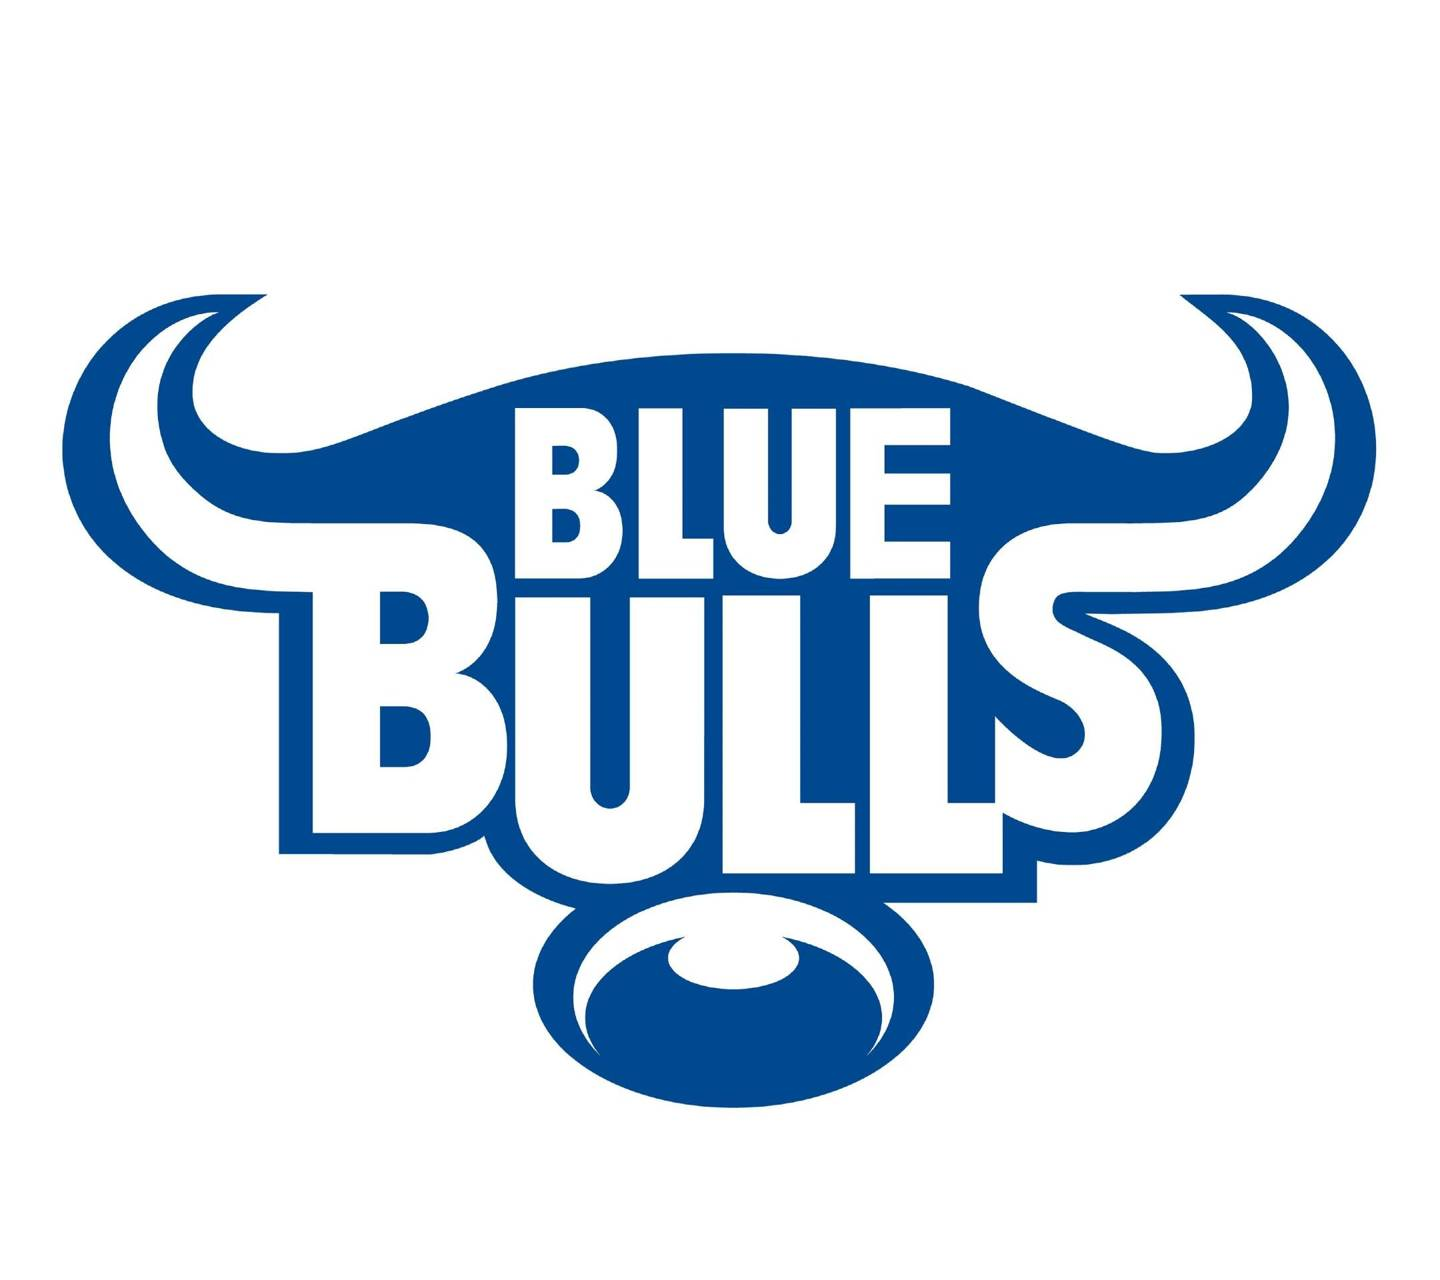 Blue Bulls Wallpaper By Konig 8e Free On Zedge